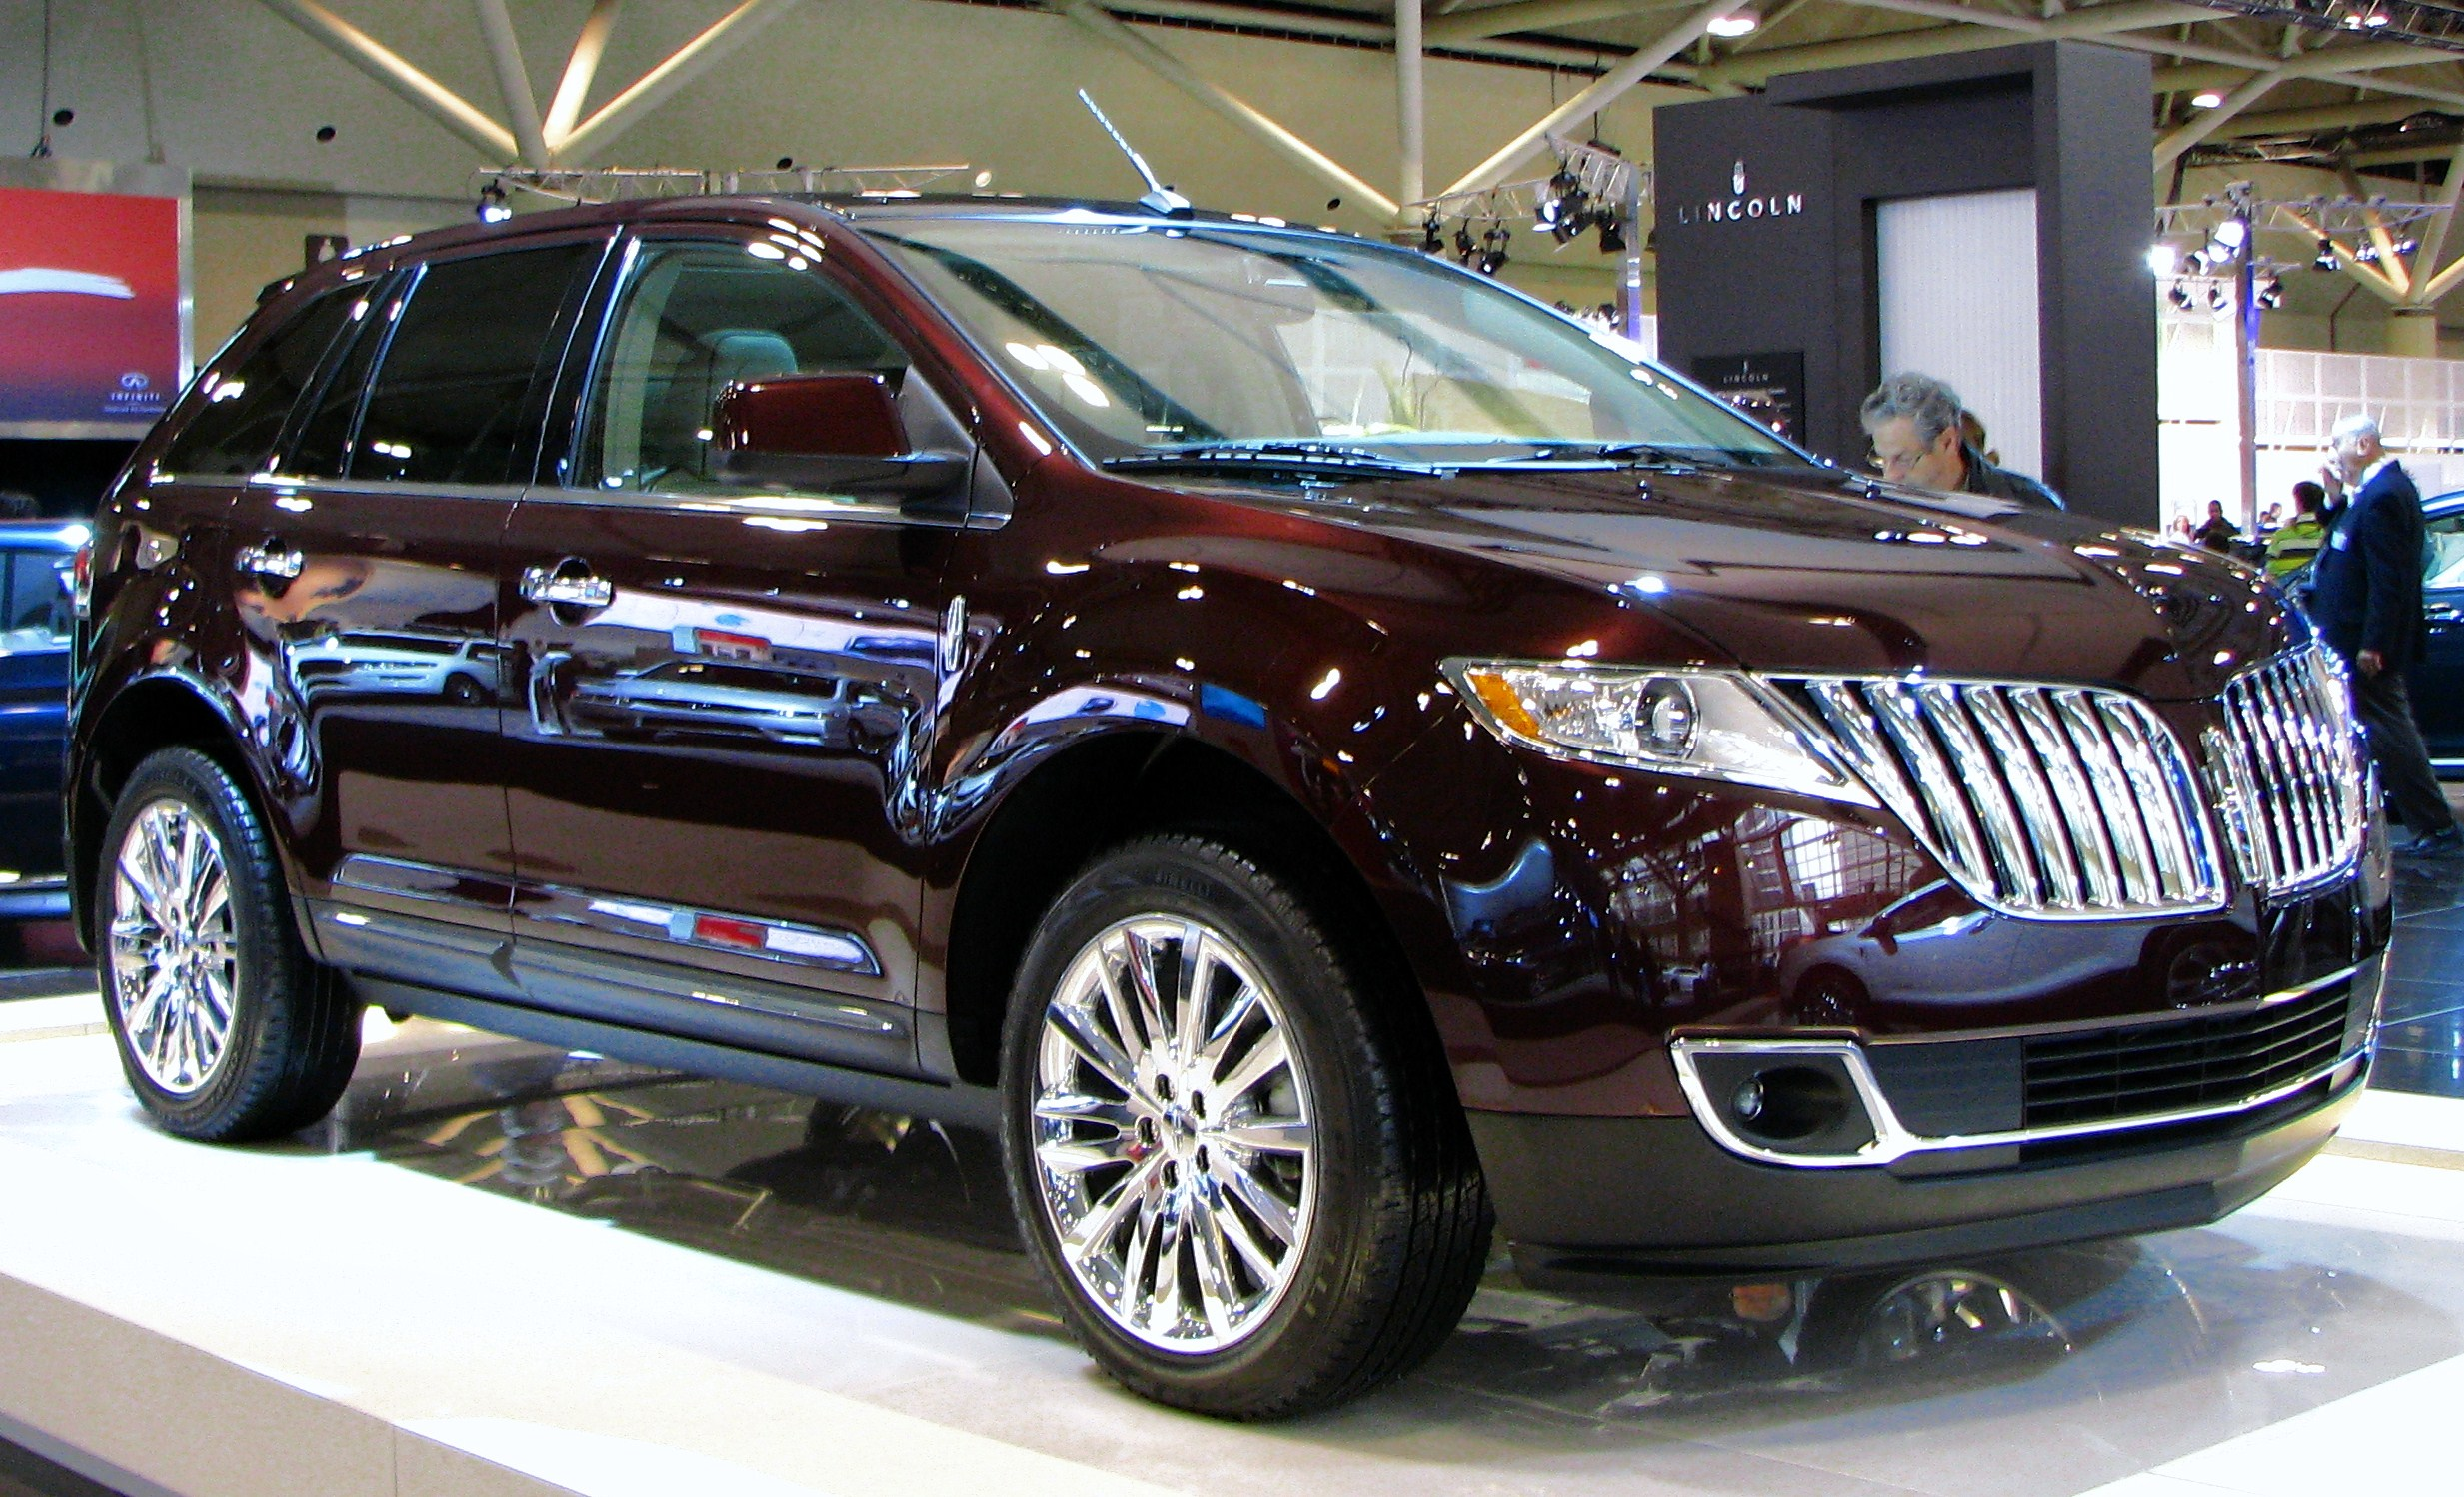 Lincoln Mtx http://commons.wikimedia.org/wiki/File:2011_Lincoln_MKX.jpg